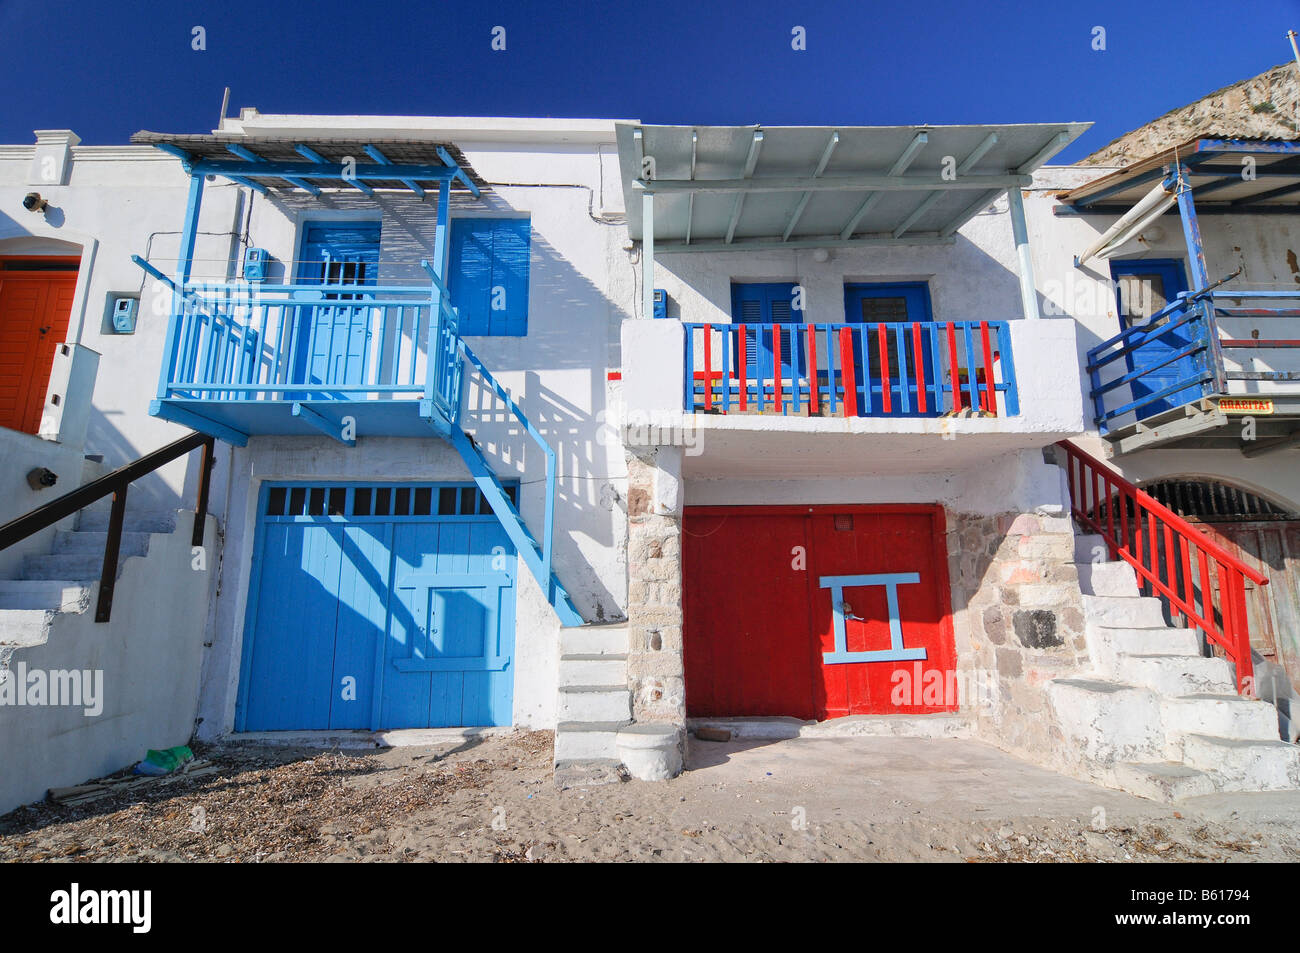 Colourful houses of the fishing village of Klima on Milos Island, Cyclades Island Group, Greece, Europe - Stock Image